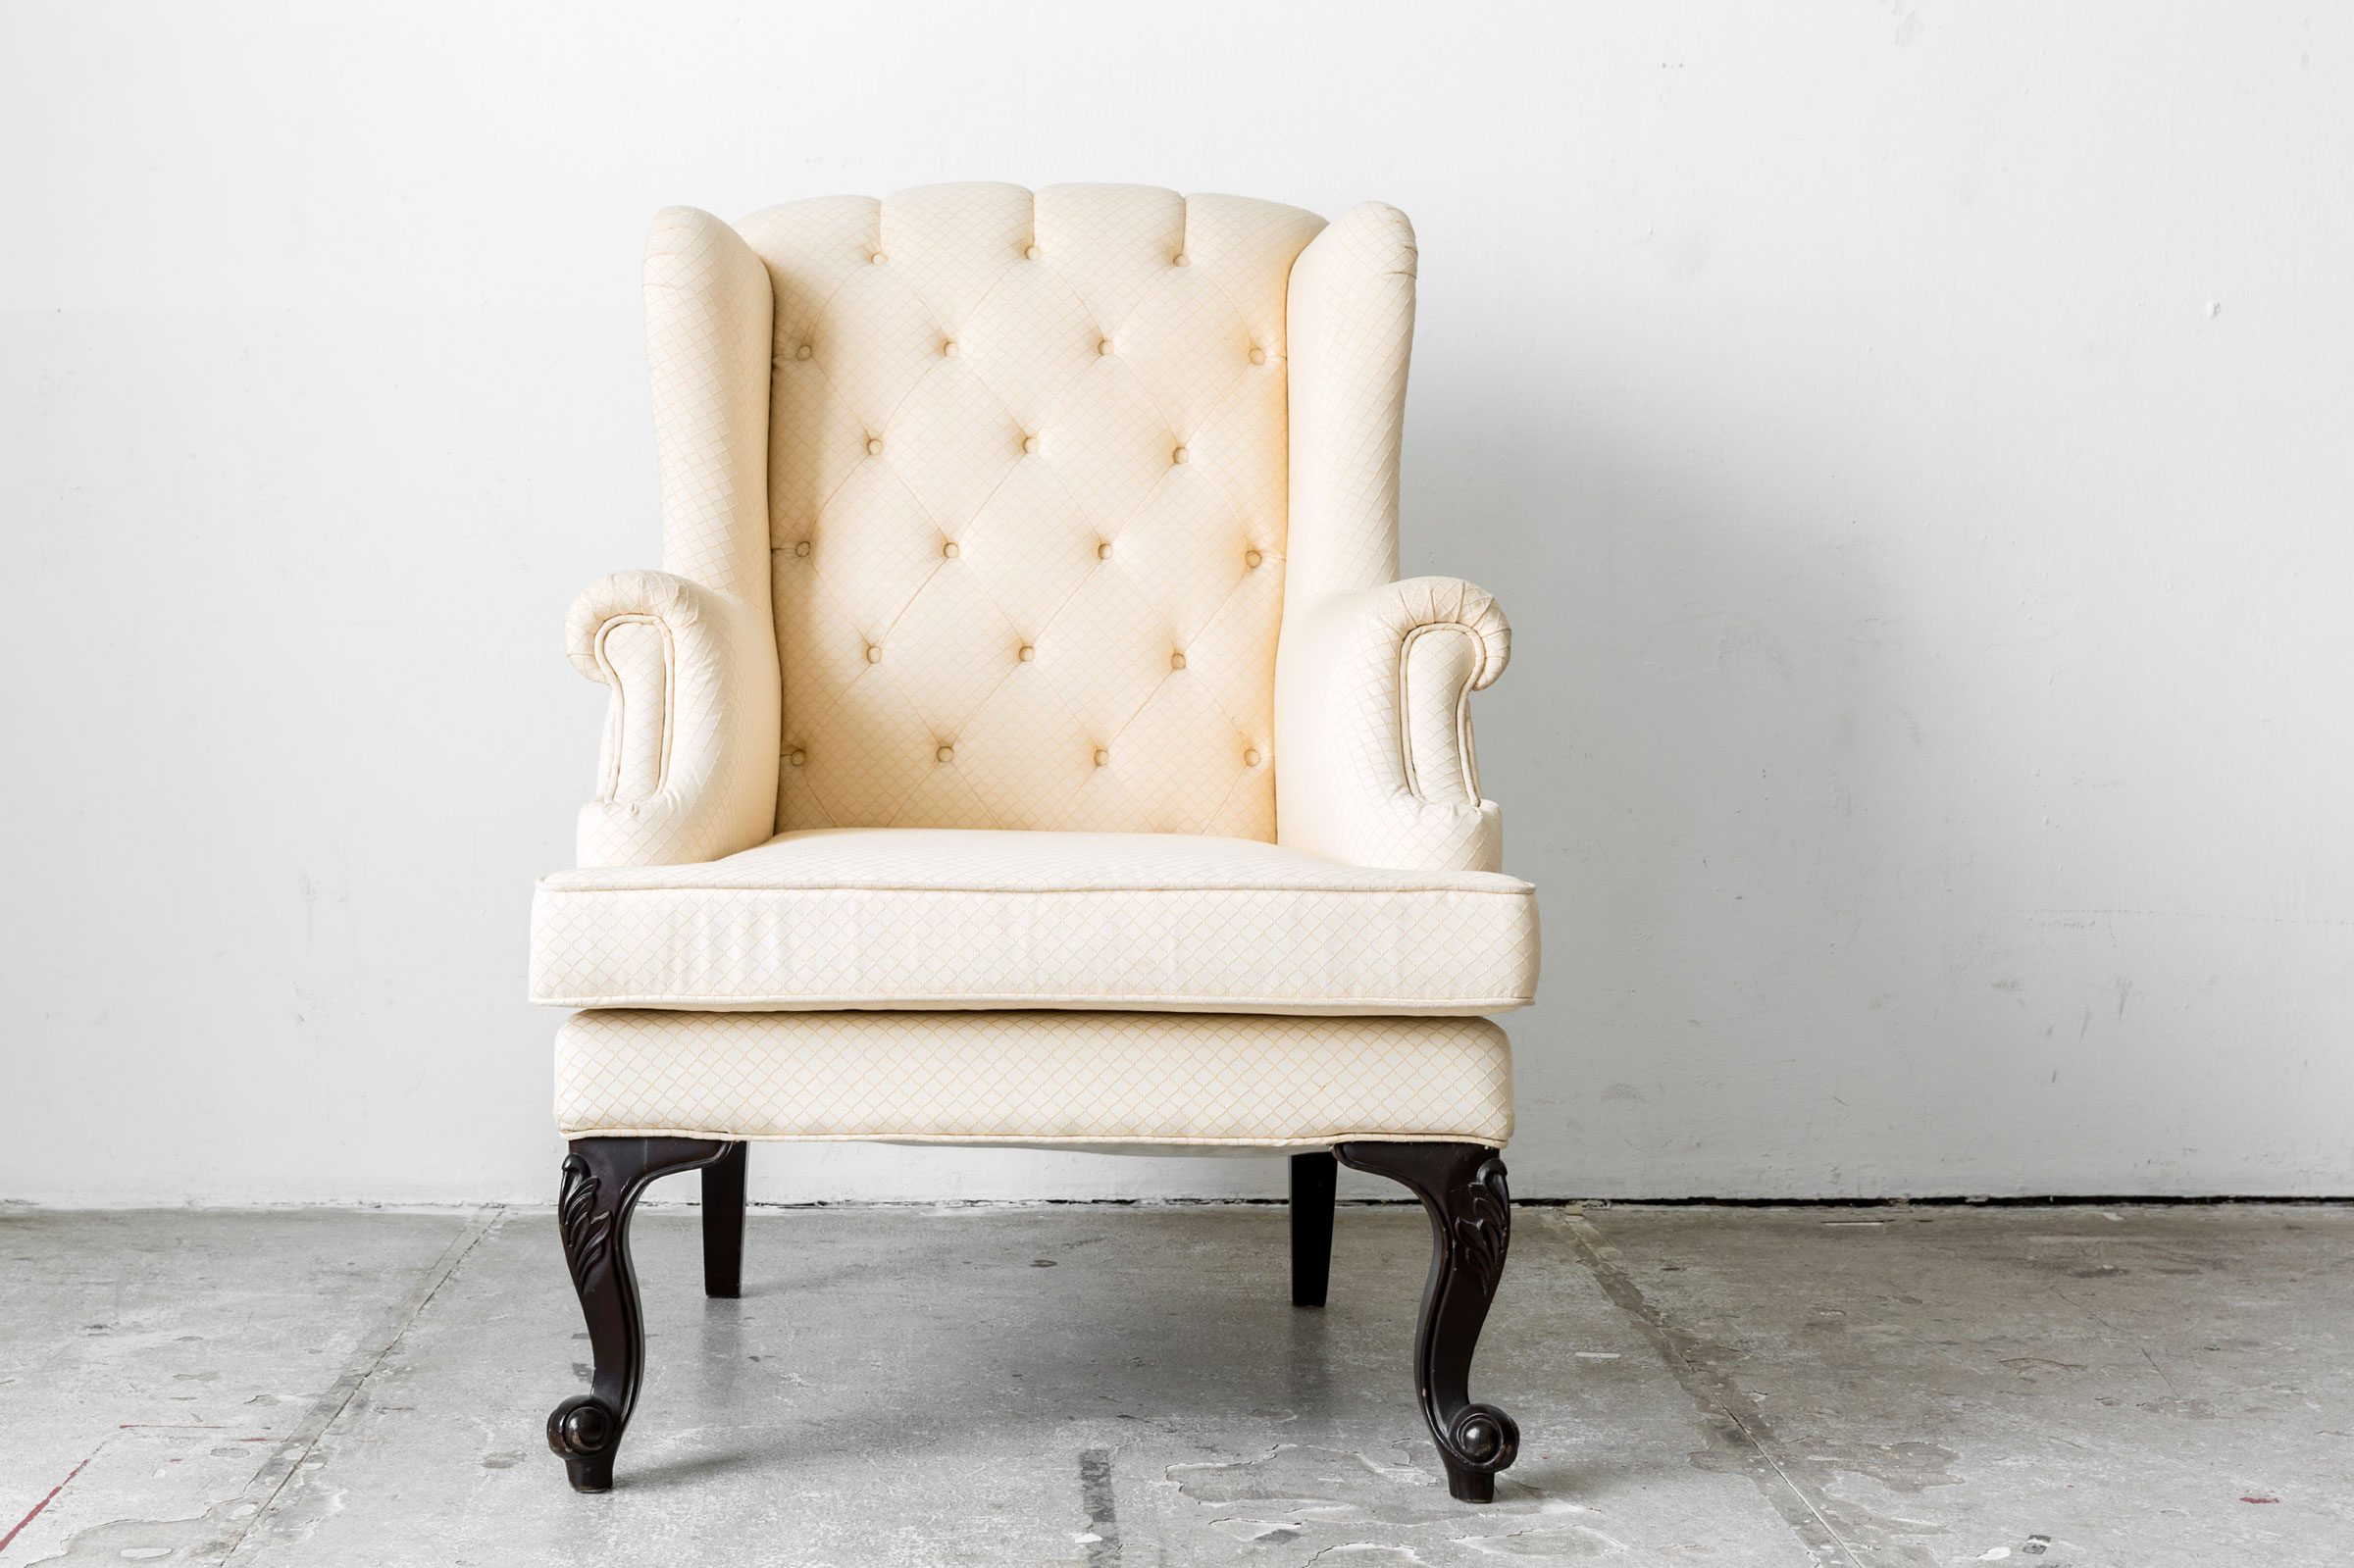 Consider These Points Before Buying A Shampoo Chair